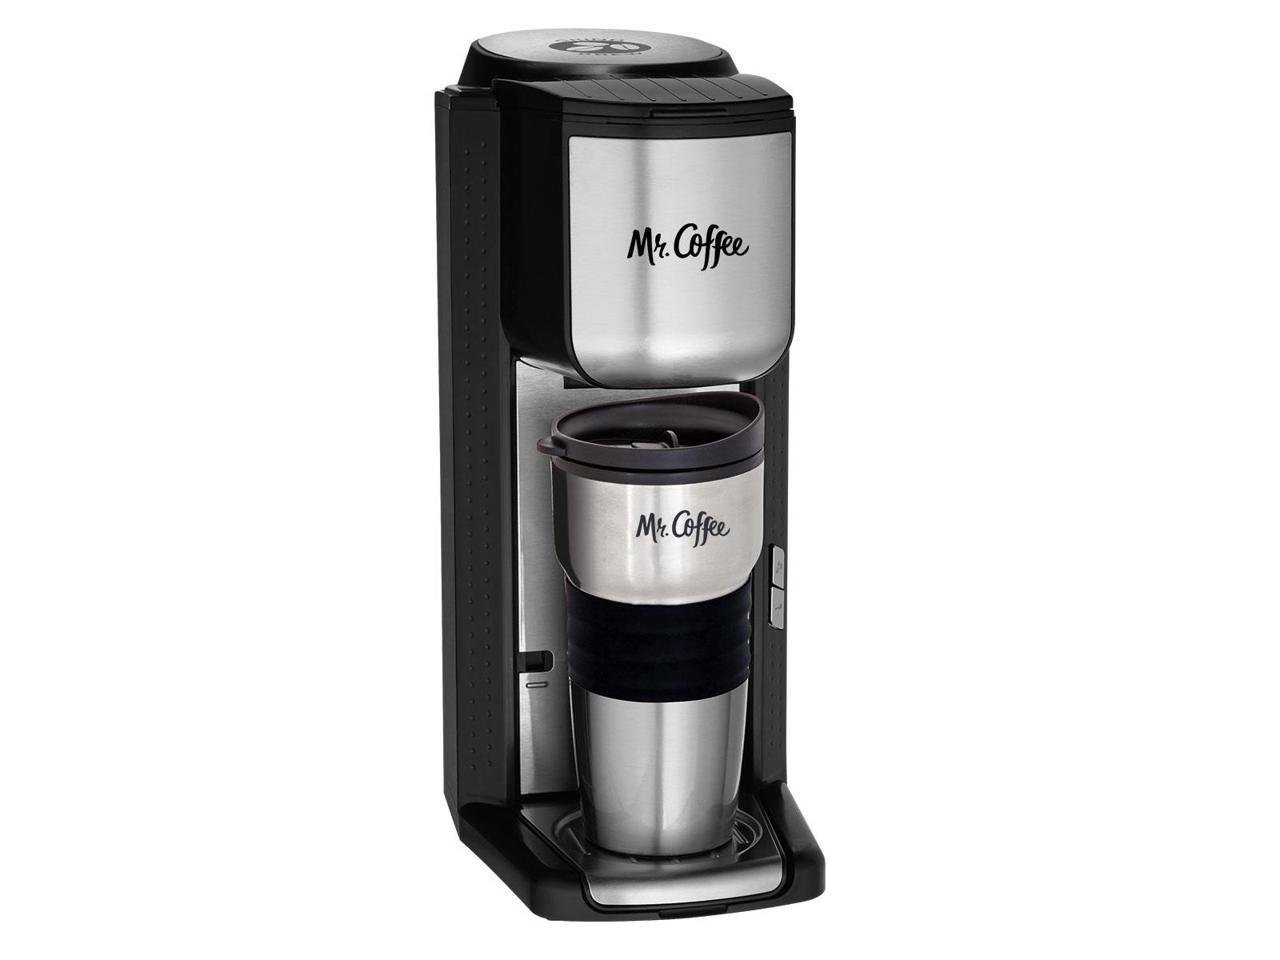 Mr. Coffee Single Cup Coffeemaker with Built-in Grinder, with Travel Mug Included BVMC-SCGB200